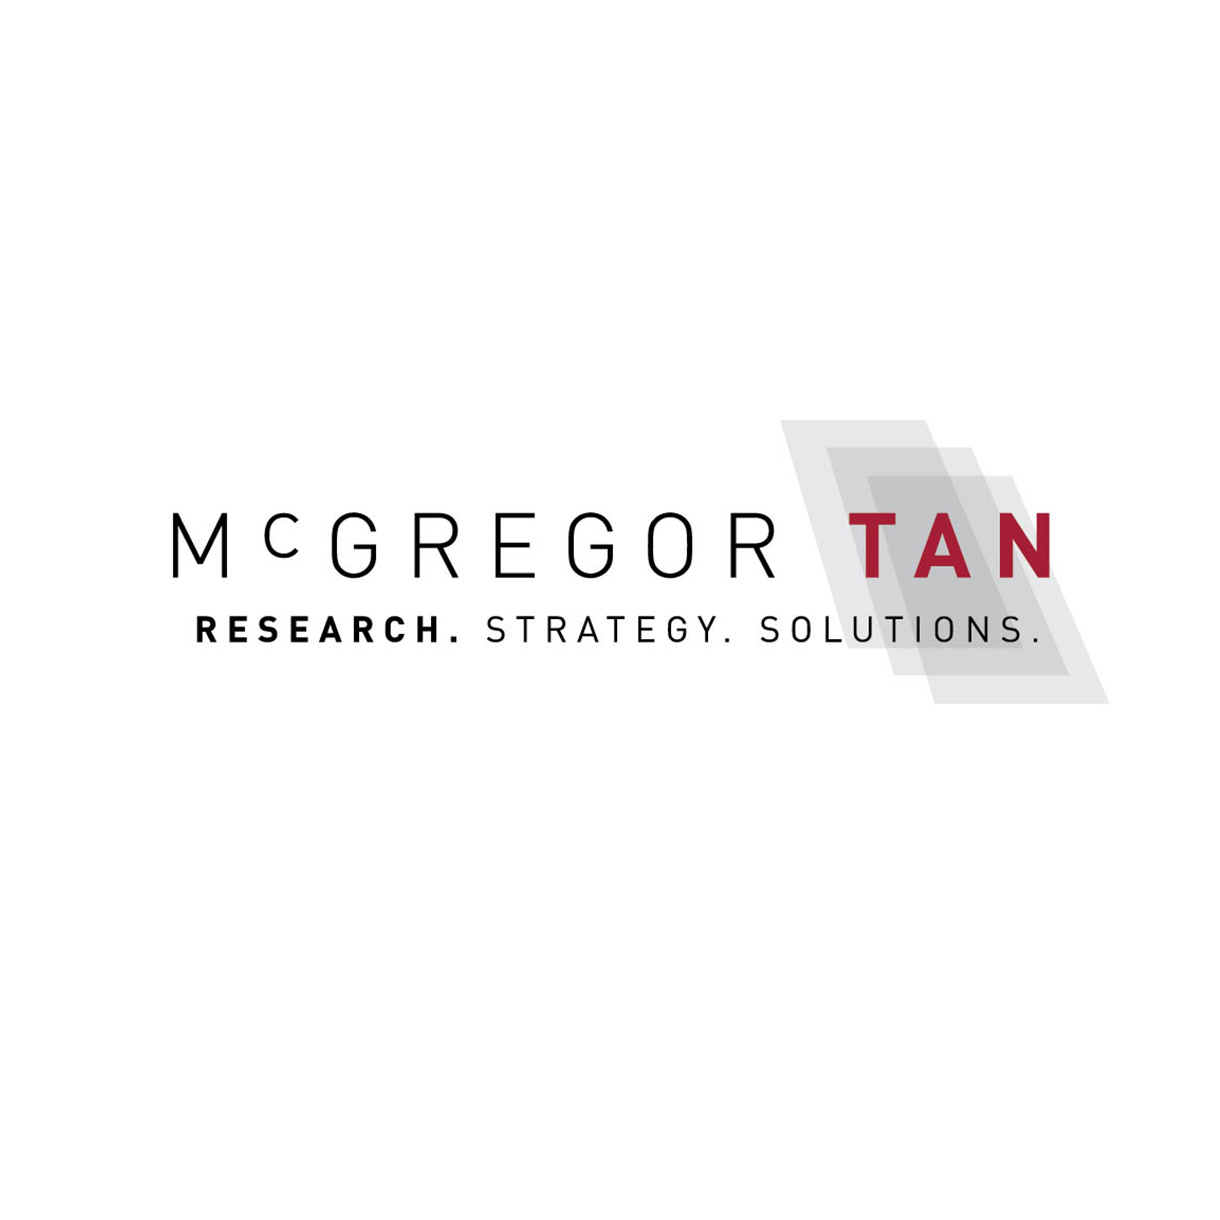 McGregor Tan